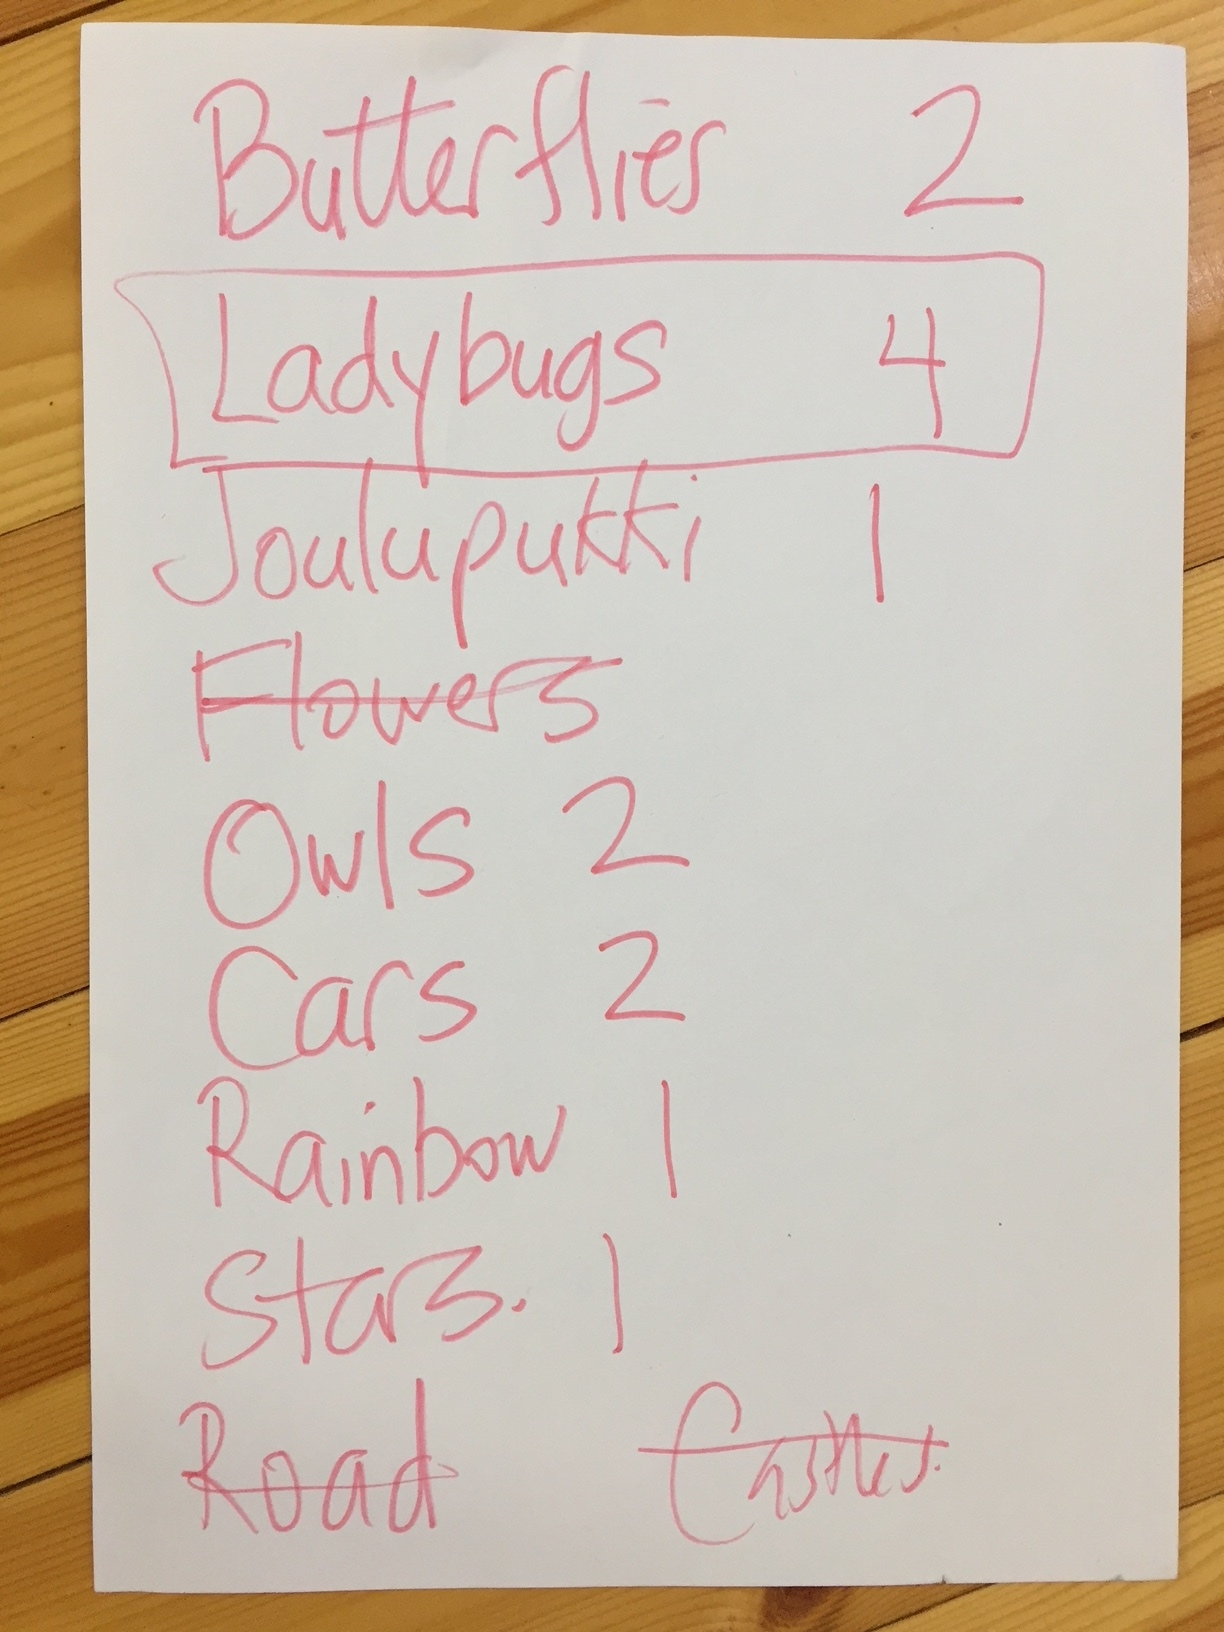 Everybody could have one vote. And the winner is Ladybugs!!